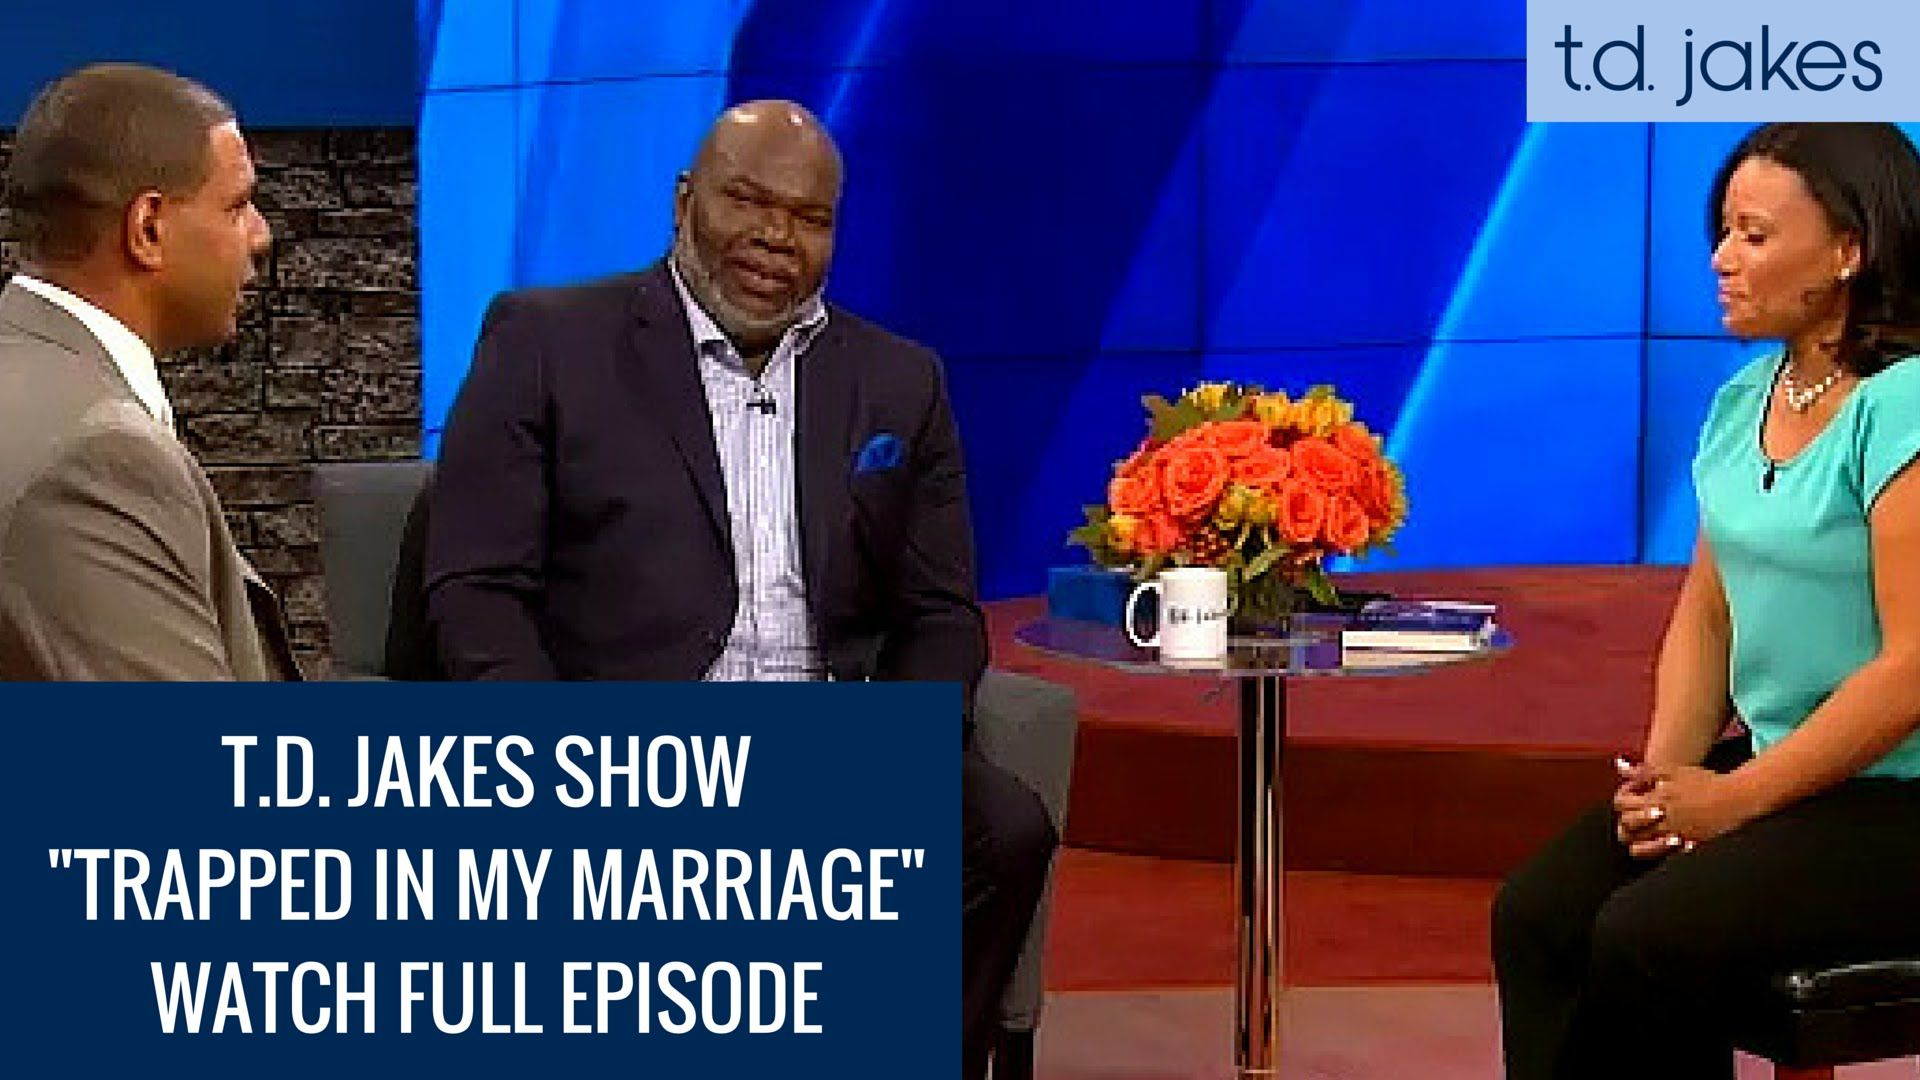 TD Jakes Show - Episode 11